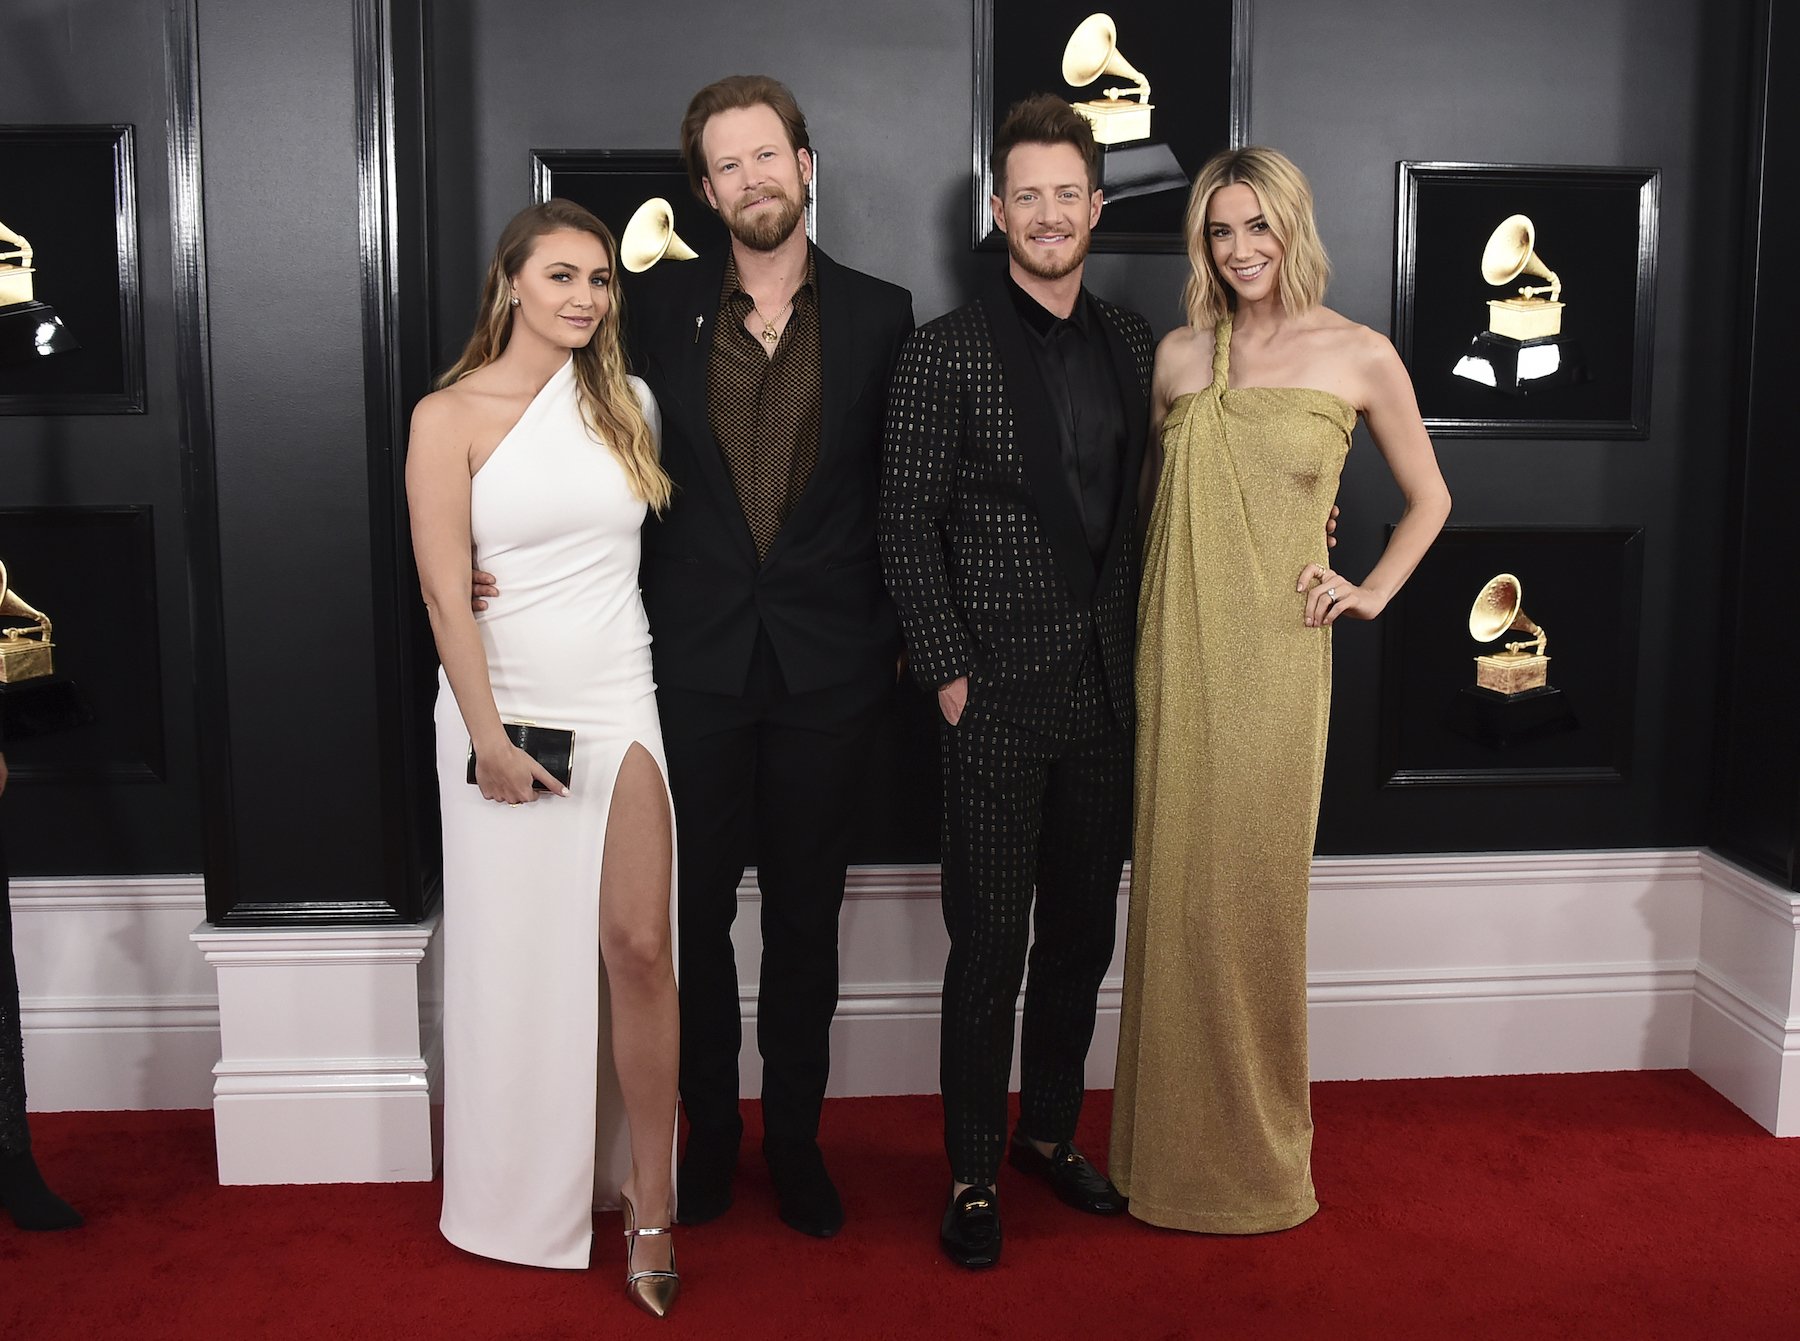 "<div class=""meta image-caption""><div class=""origin-logo origin-image ap""><span>AP</span></div><span class=""caption-text"">Brittney Marie Cole, from left, Brian Kelley, Tyler Hubbard, and Hayley Stommel arrive at the 61st annual Grammy Awards at the Staples Center on Sunday, Feb. 10, 2019. (Jordan Strauss/Invision/AP)</span></div>"